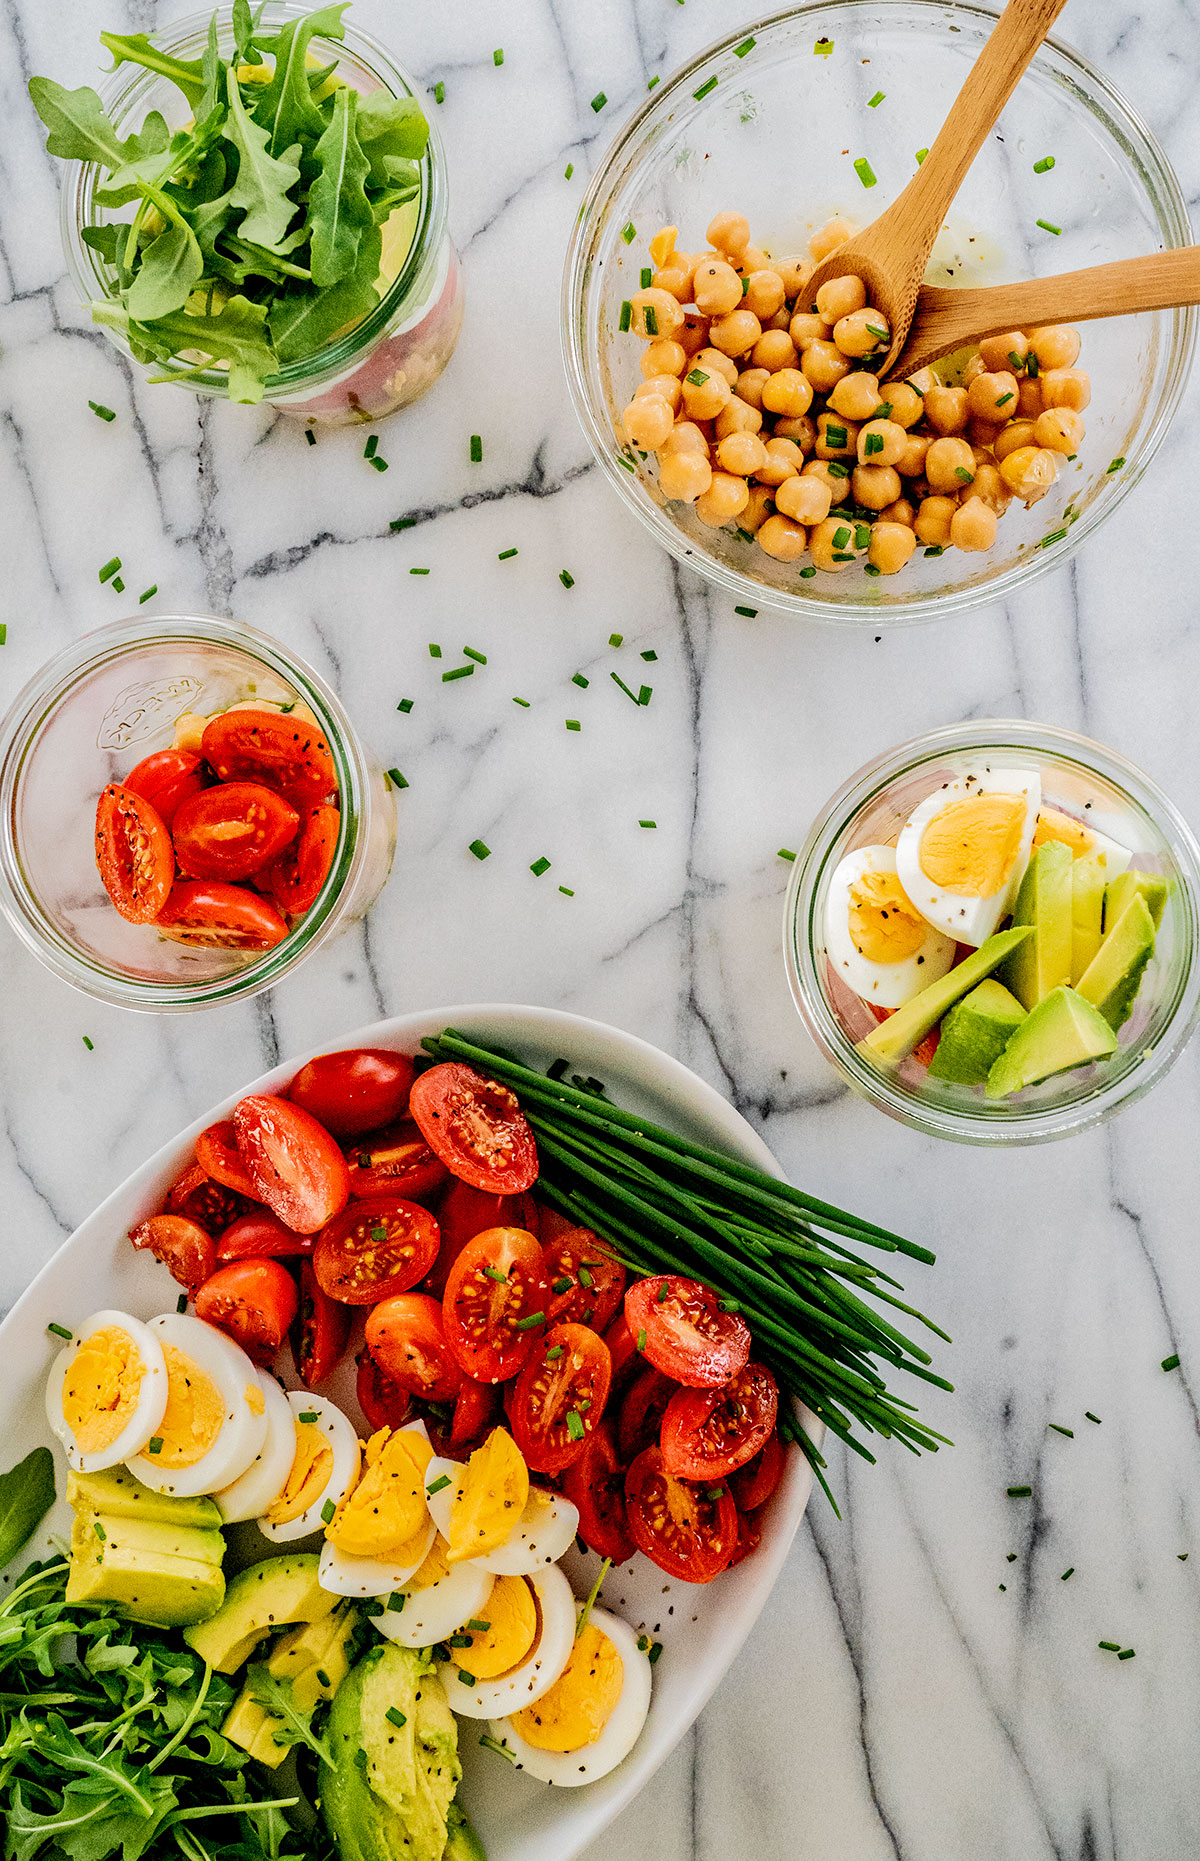 Marinated-Chickpea-Salad-Pots-Recipe